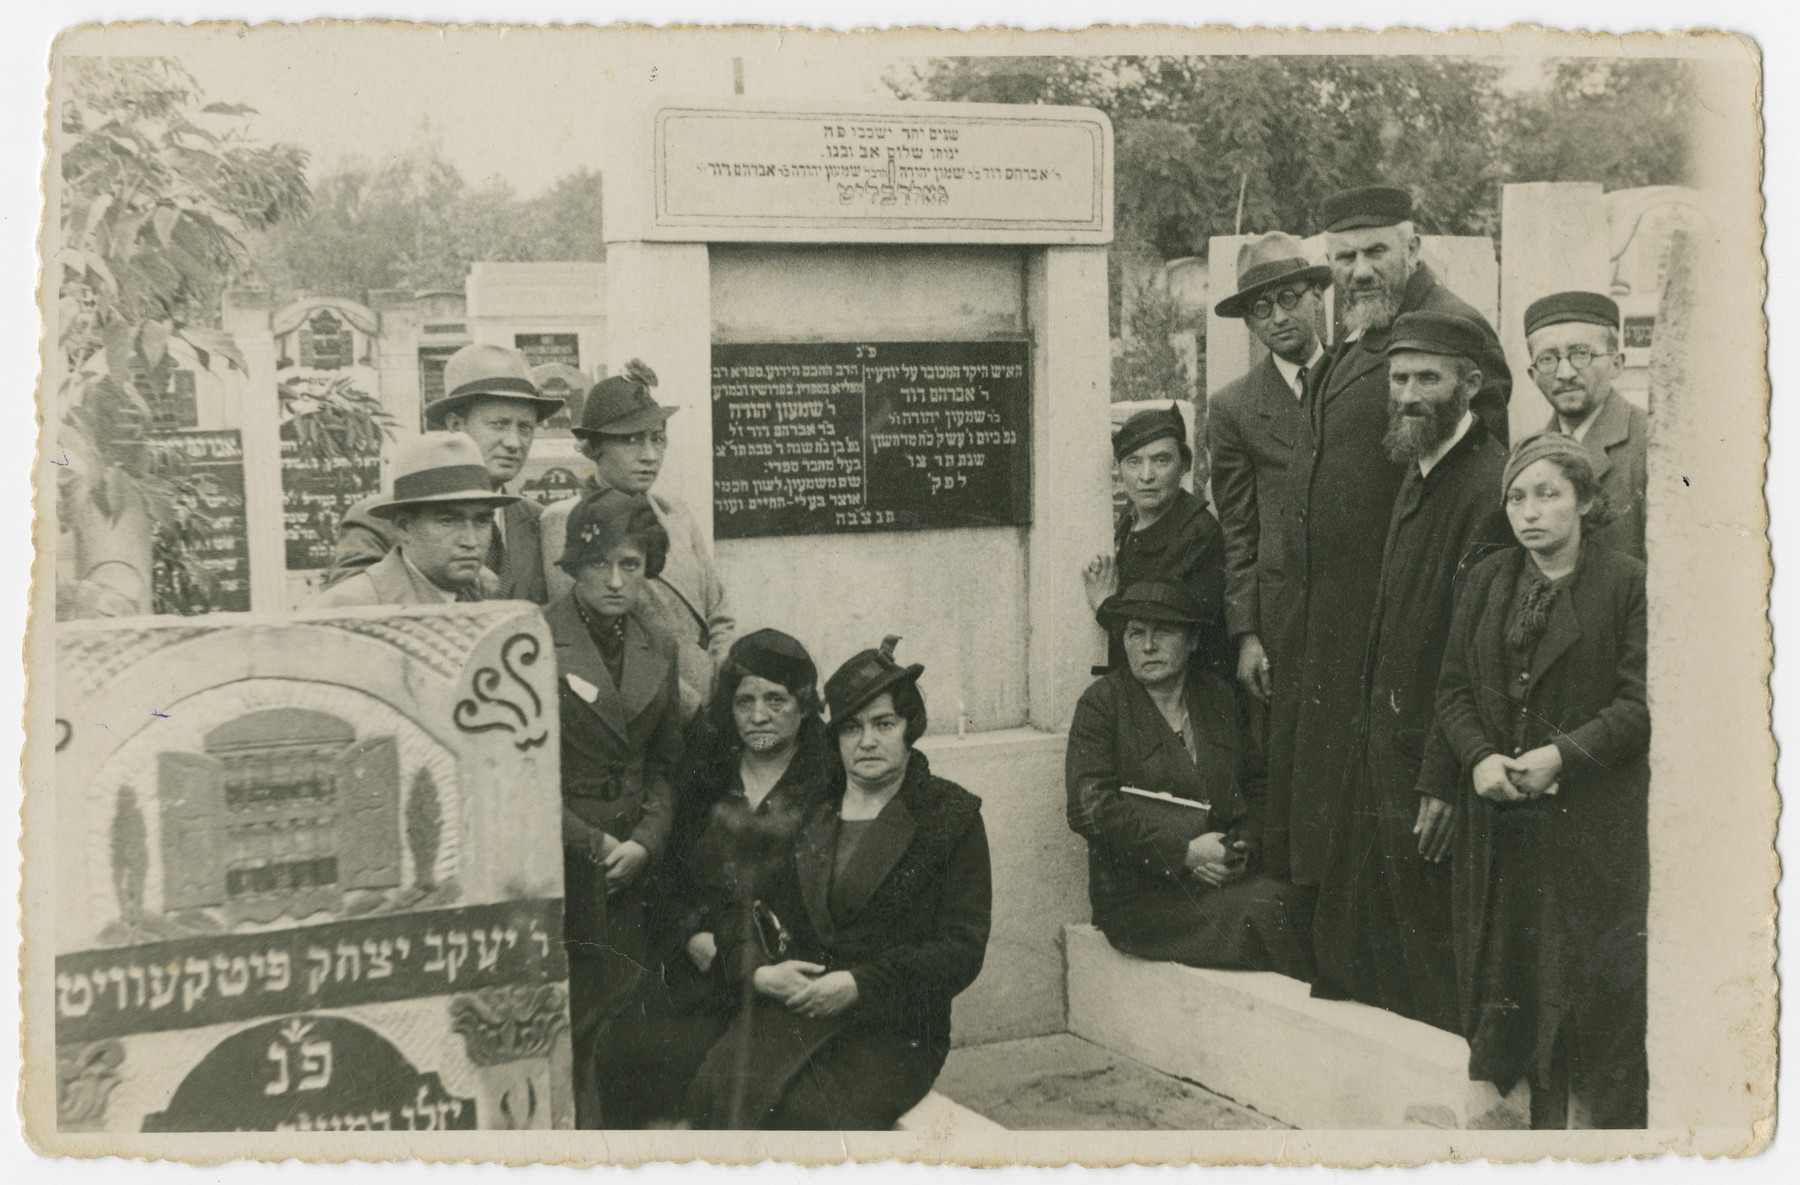 An extended Polish Jewish family gathers by a tombstone in the Jewish cemetery in Lodz.  Herschel Hudes (father of Lola Hudes Bielski), standing fourth from right and Necha Hudes (mother of Lola Hudes Bielski), seated first from left are pictured at the Lodz Cemetery shortly before the Holocaust.  All the people in the photo perished in the Holocaust.